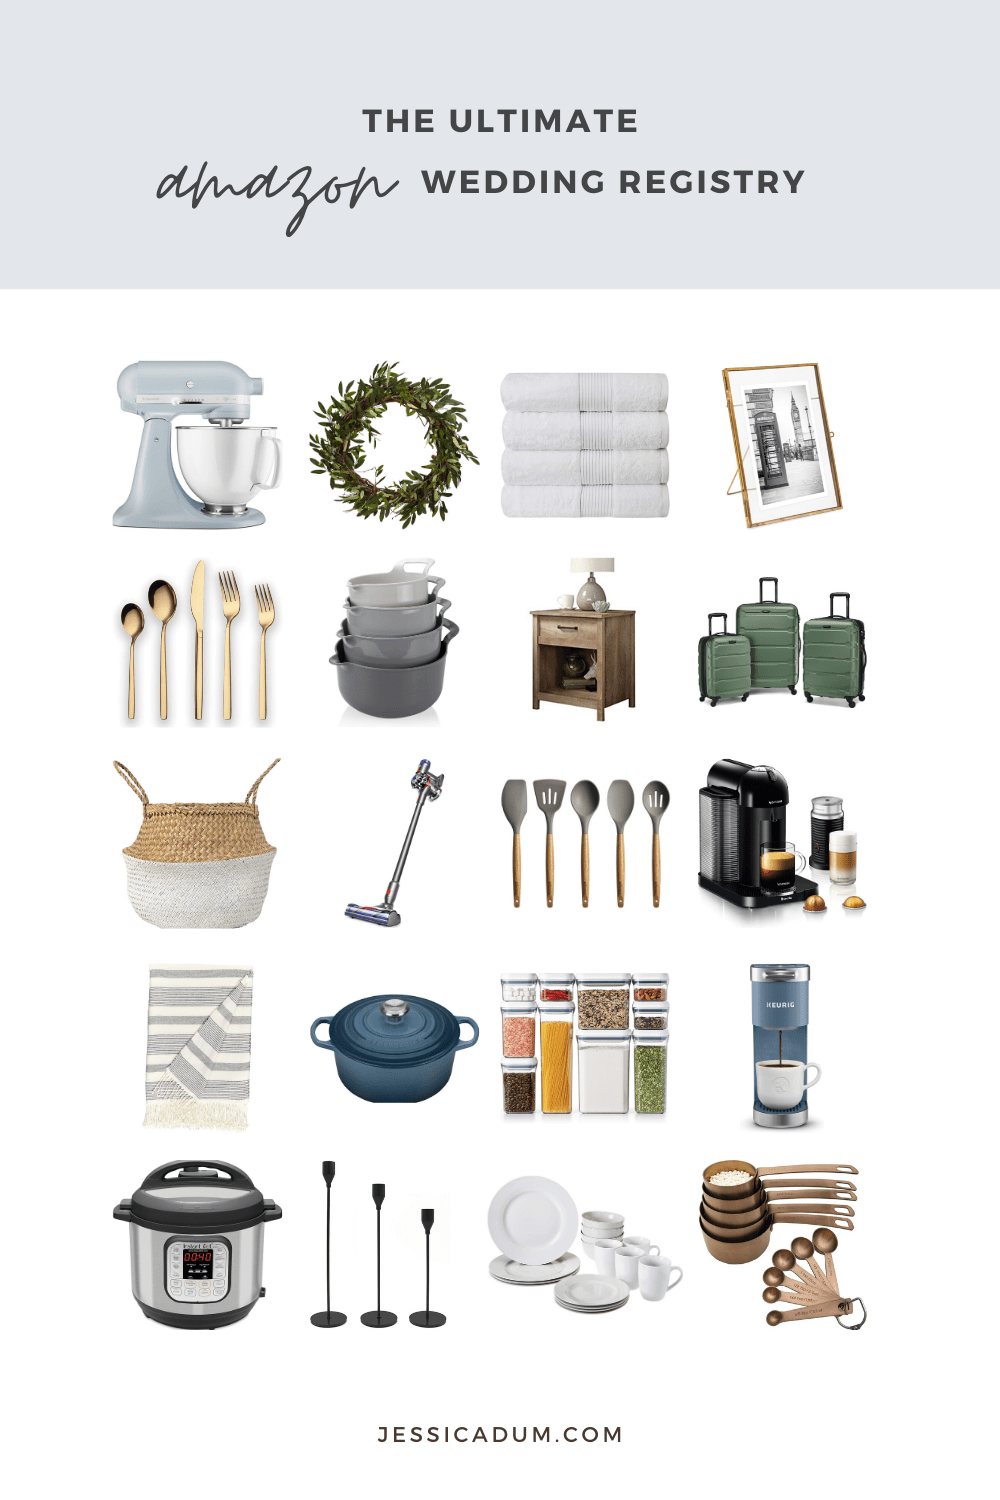 Creating a wedding registry can oftentimes be a daunting task, but today we're sharing the ultimate guide to creating your Amazon wedding registry with 60 must-have items you're sure to love for your new home and life together as a newly married couple!